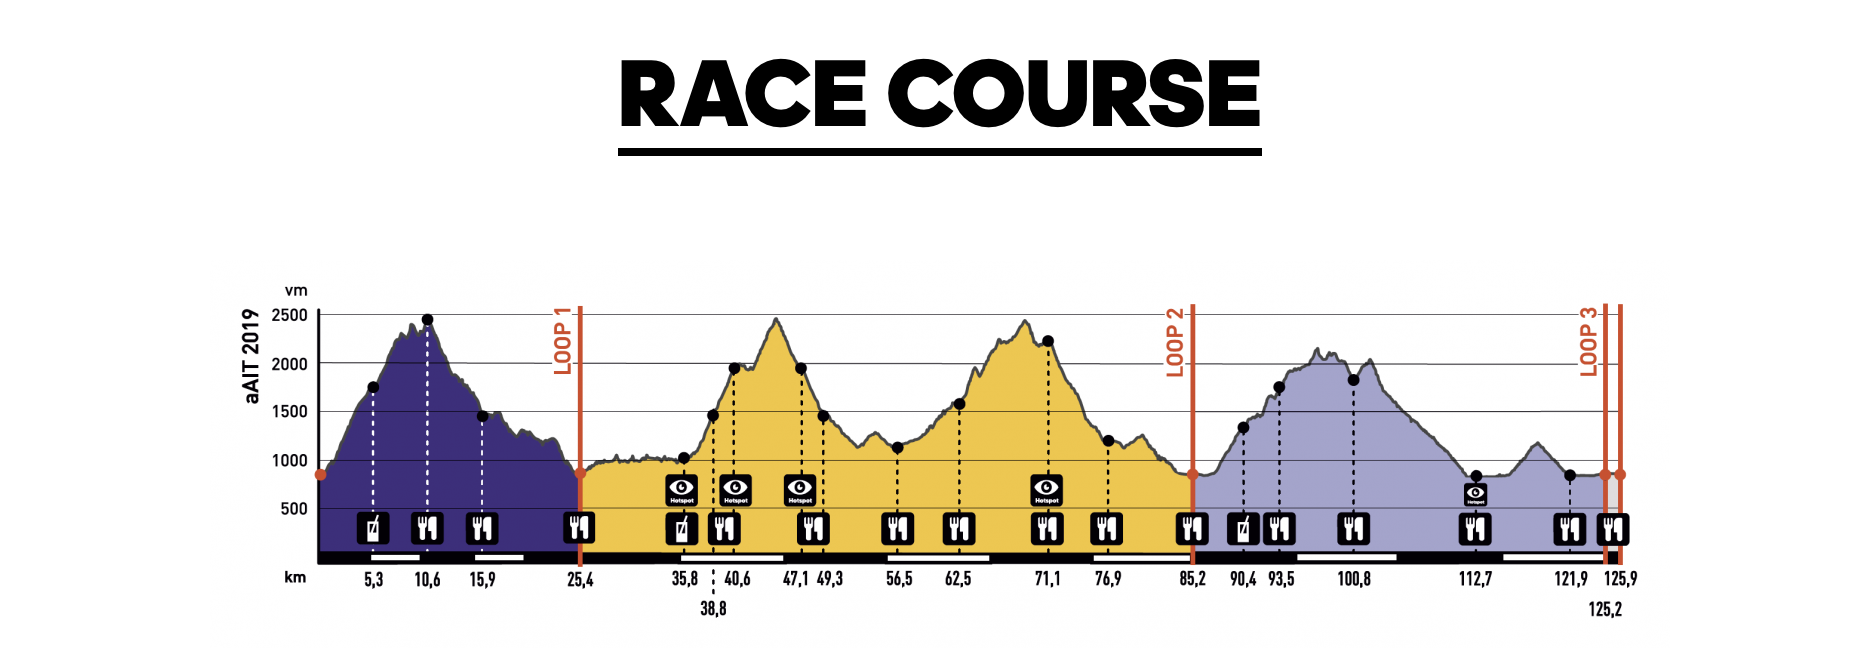 Race Course Profile Infinite Trails World Championships 2019